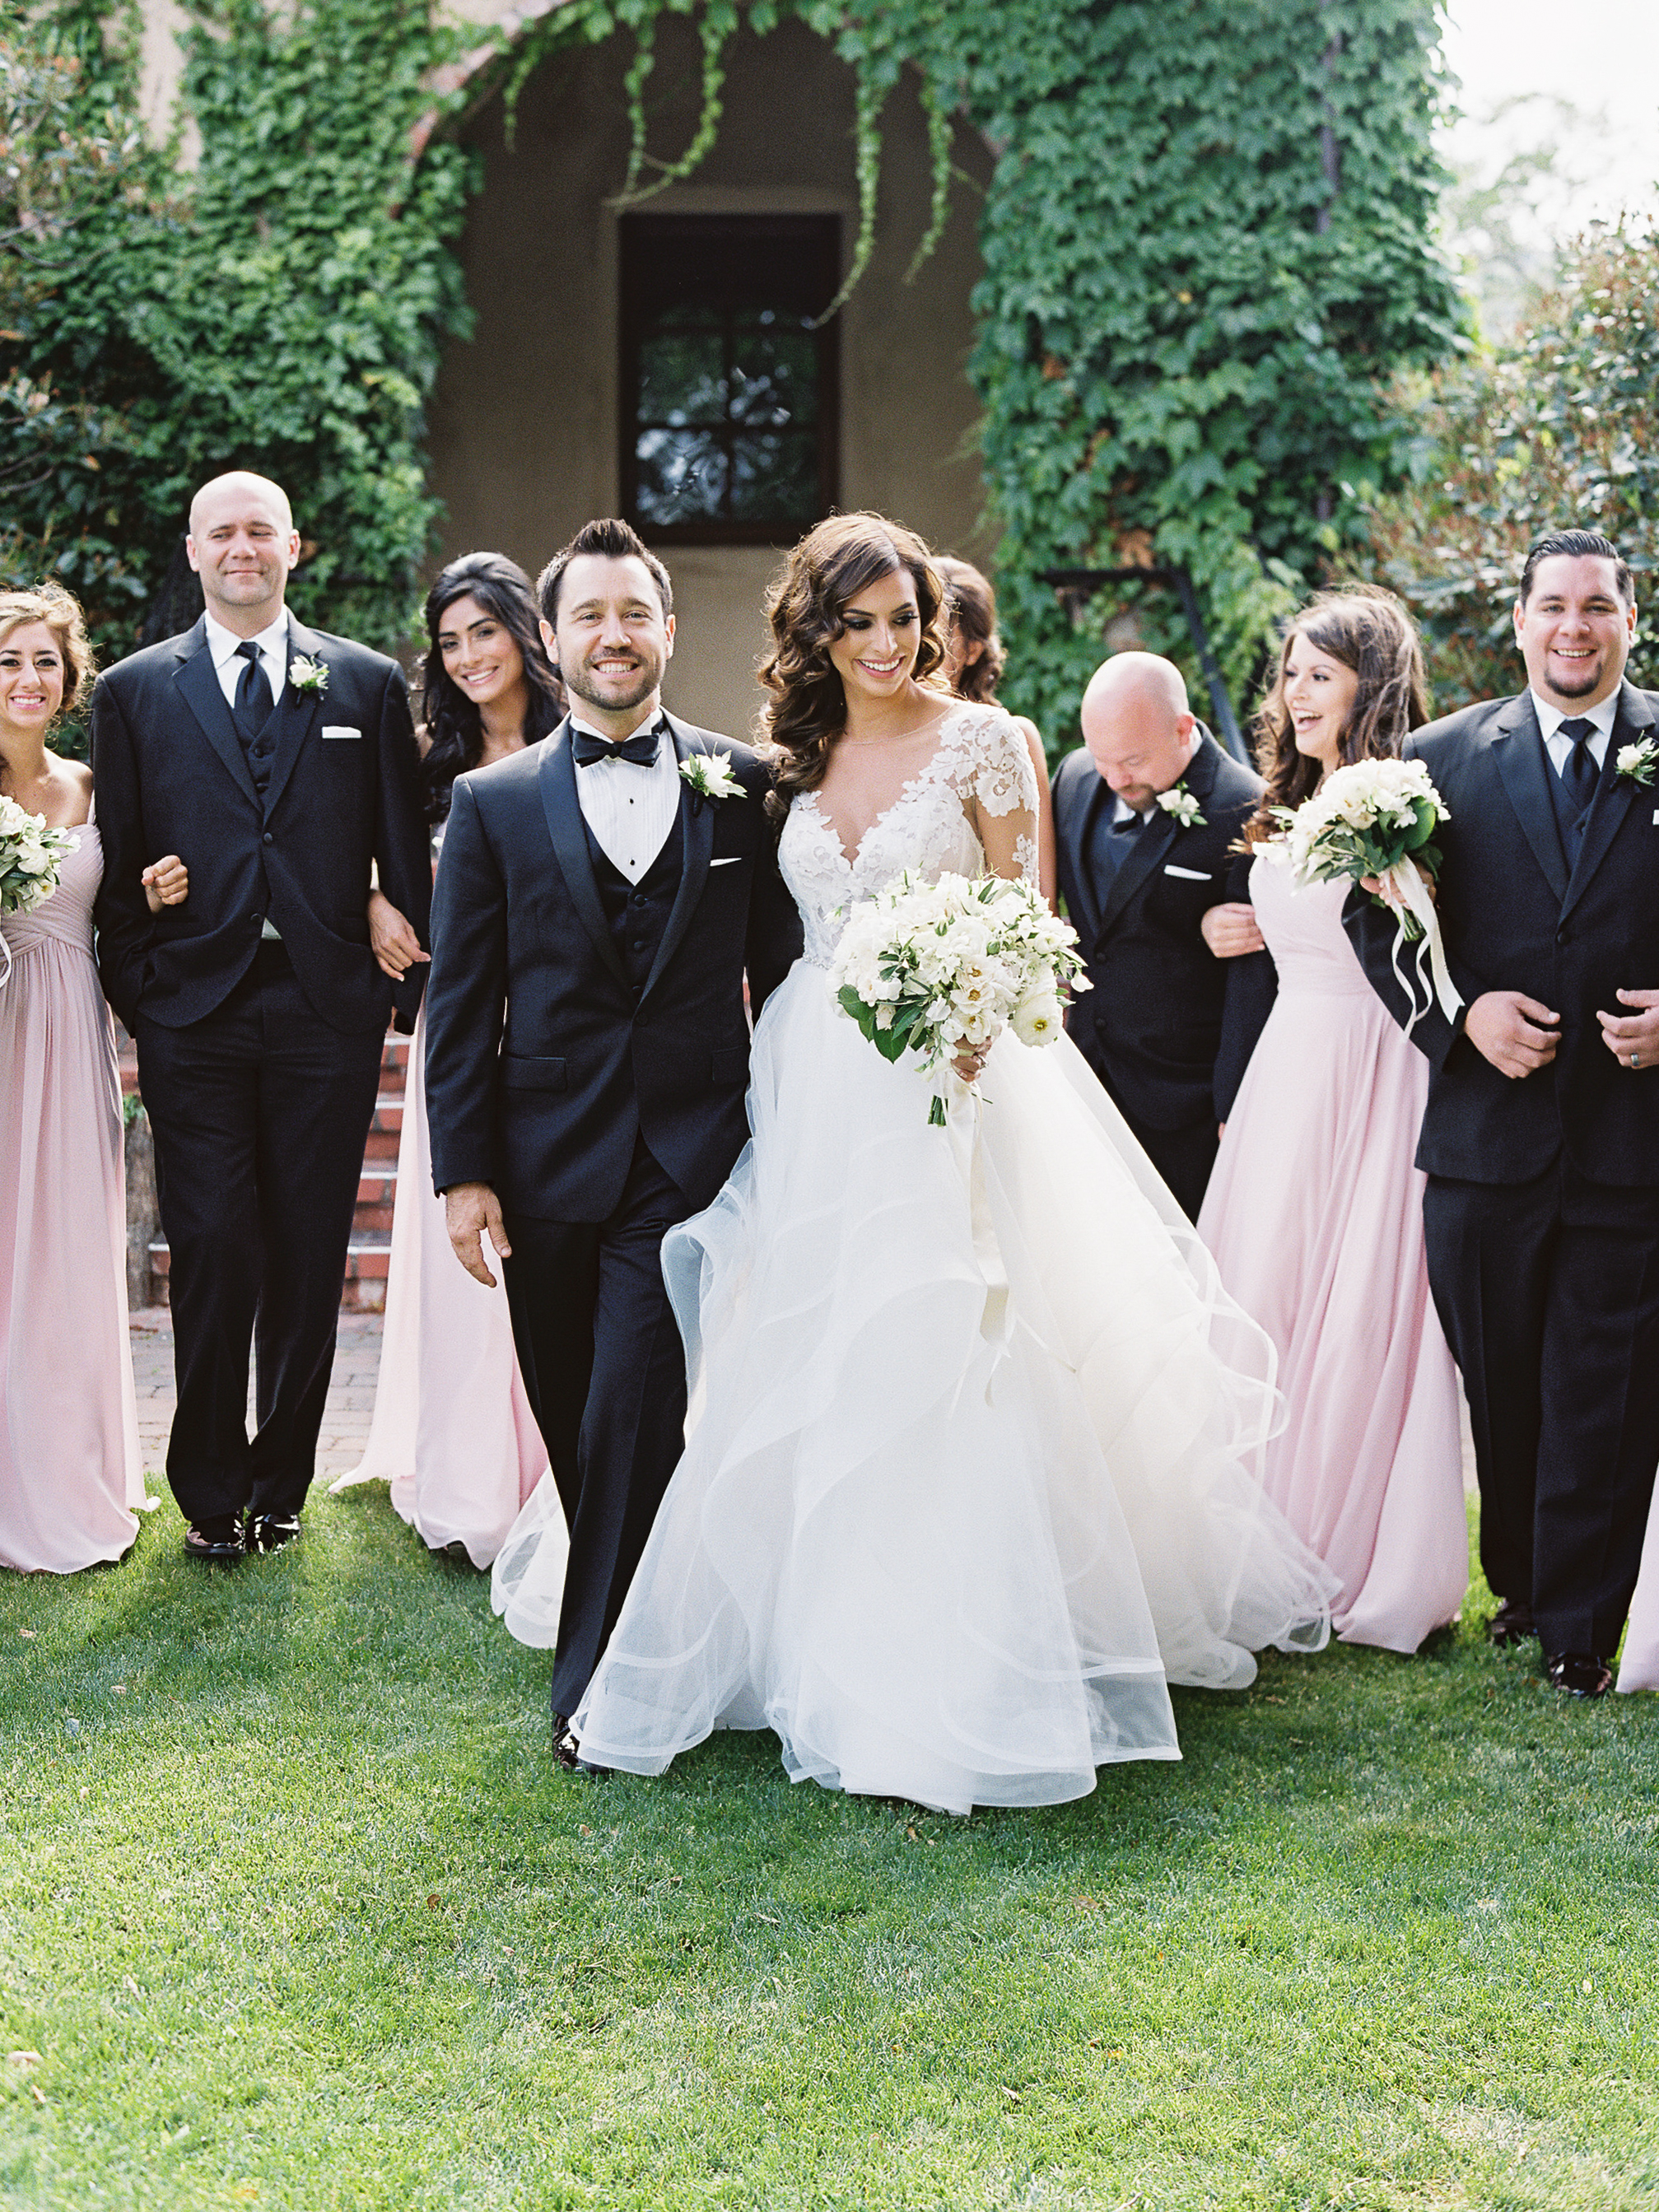 Meghan Mehan Photography | Fine Art Film Wedding Photographer | California | San Francisco | Napa | Sonoma | Santa Barbara | Big Sur | Destination Wedding Photographer 033.jpg